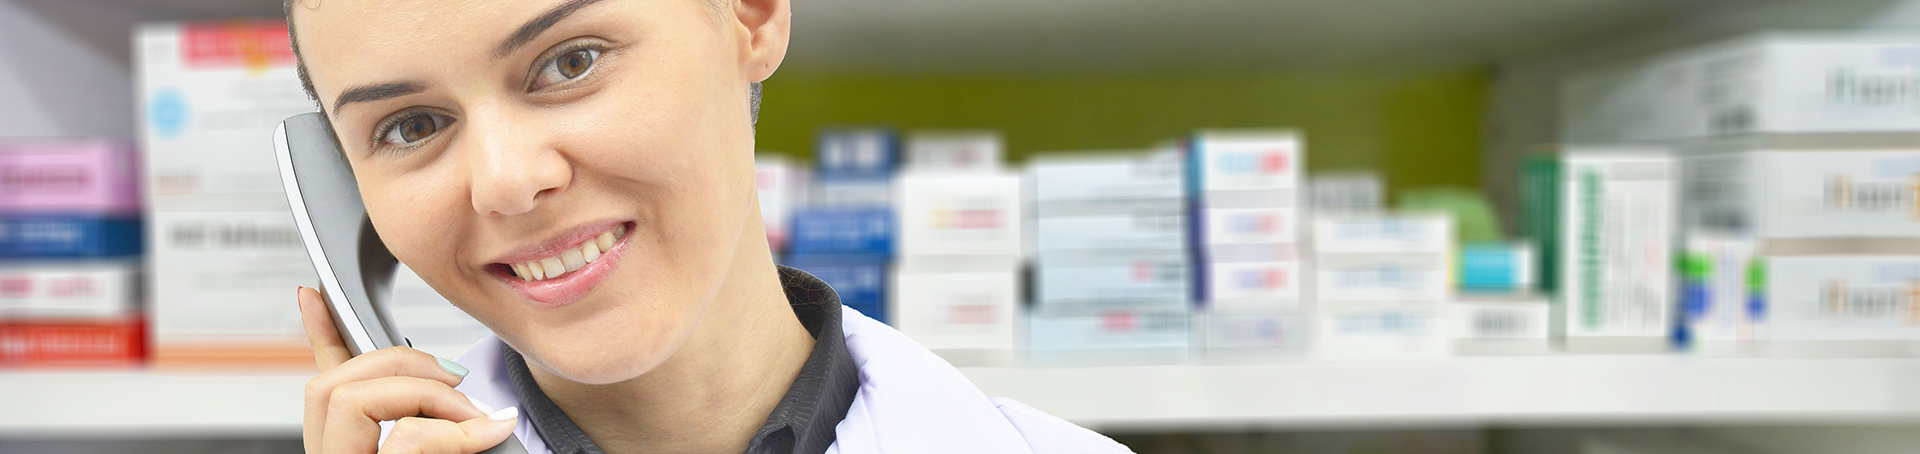 Contact Wiley's, your Local pharmacy, with questions, concerns, or comments